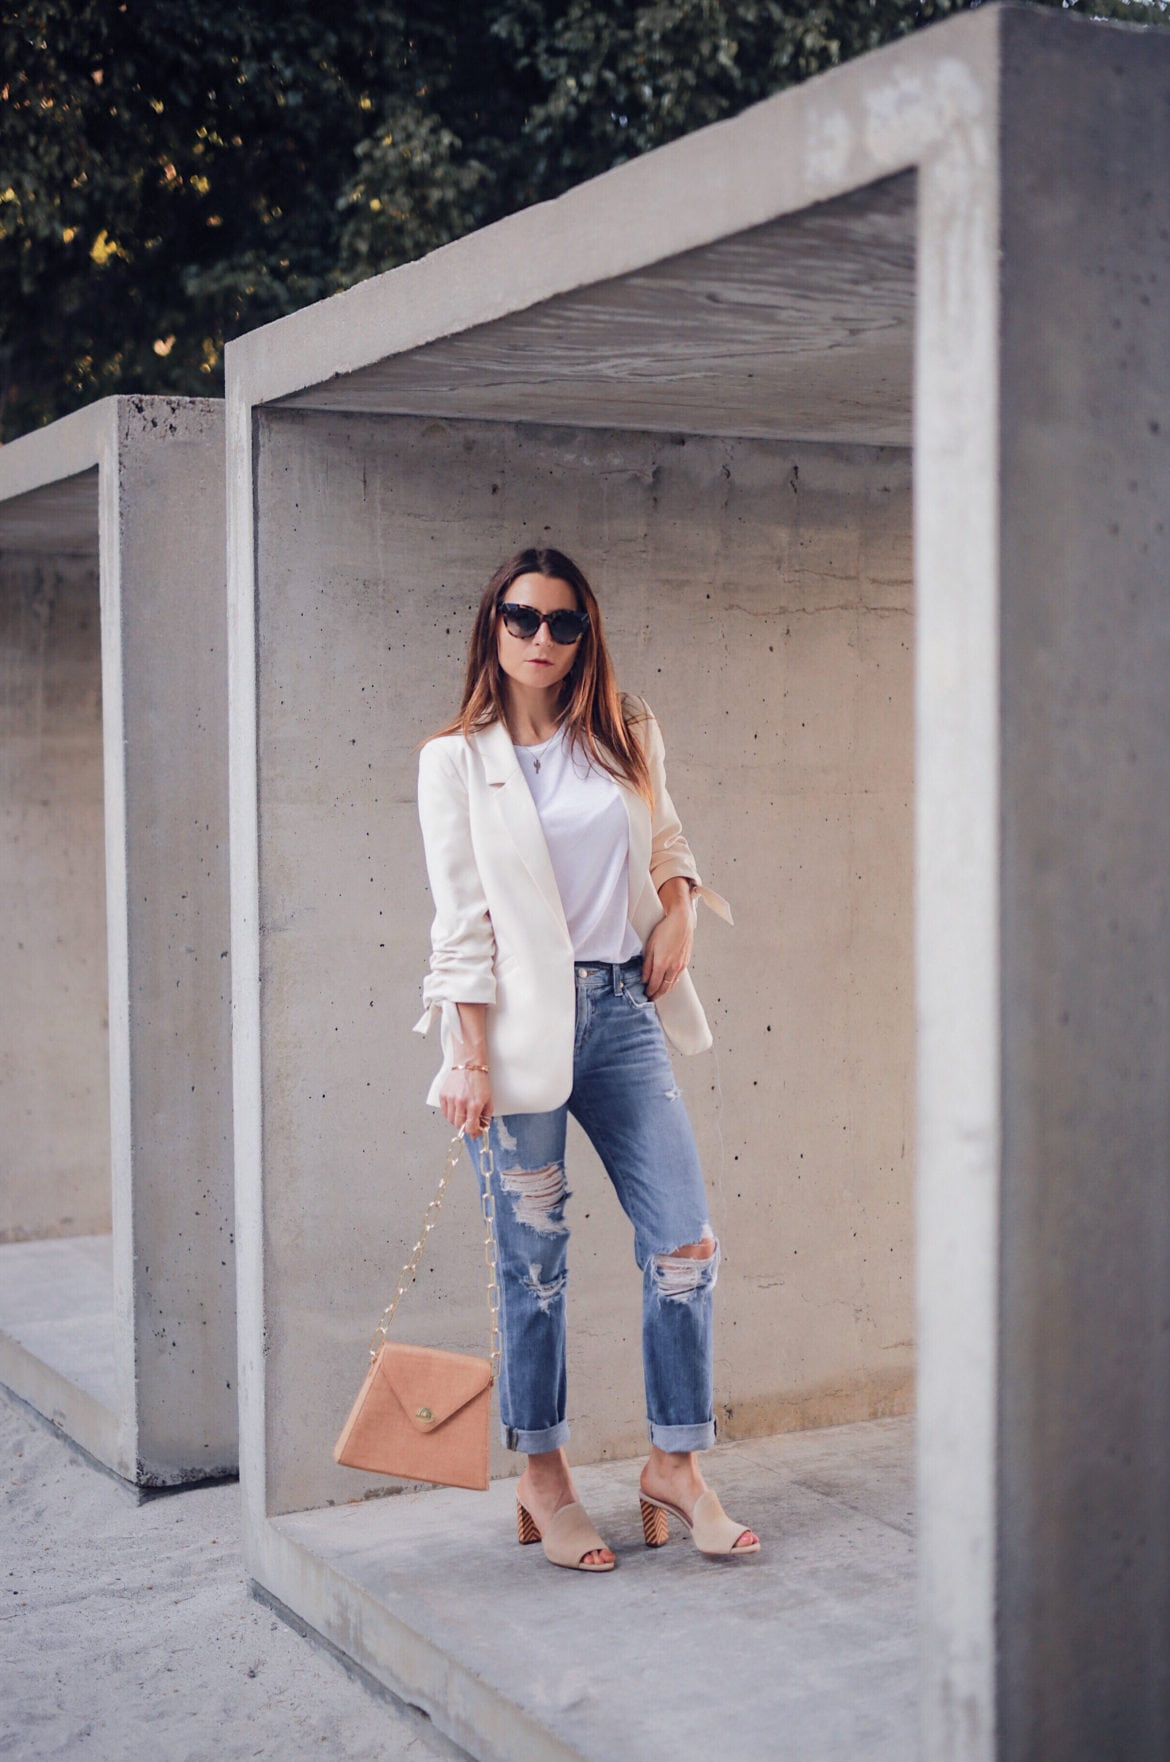 Style upgrade: The Summer blazer for women. Fashion Blogger Julia Comil is wearing a cream summer blazer from River Island. The full look and selection of affordable summer blazers on Houseofcomil.com. Bag by Musier Paris